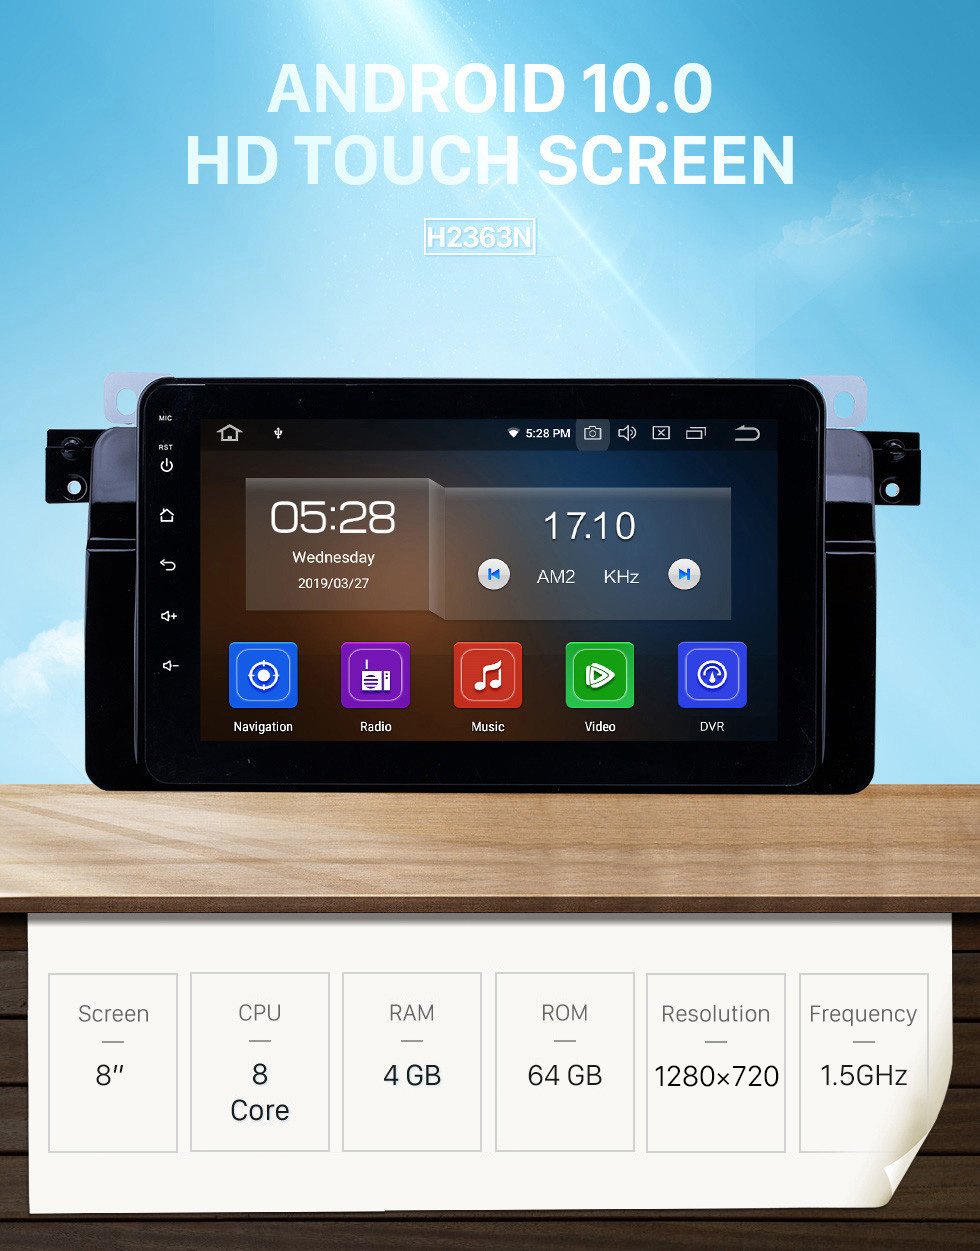 Seicane HD Touchscreen Android 10.0 8 inch GPS Navigation Radio for 1998-2006 BMW 3 Series E46 M3 with WIFI Bluetooth USB Carplay Support 1080P Video DVR TPMS